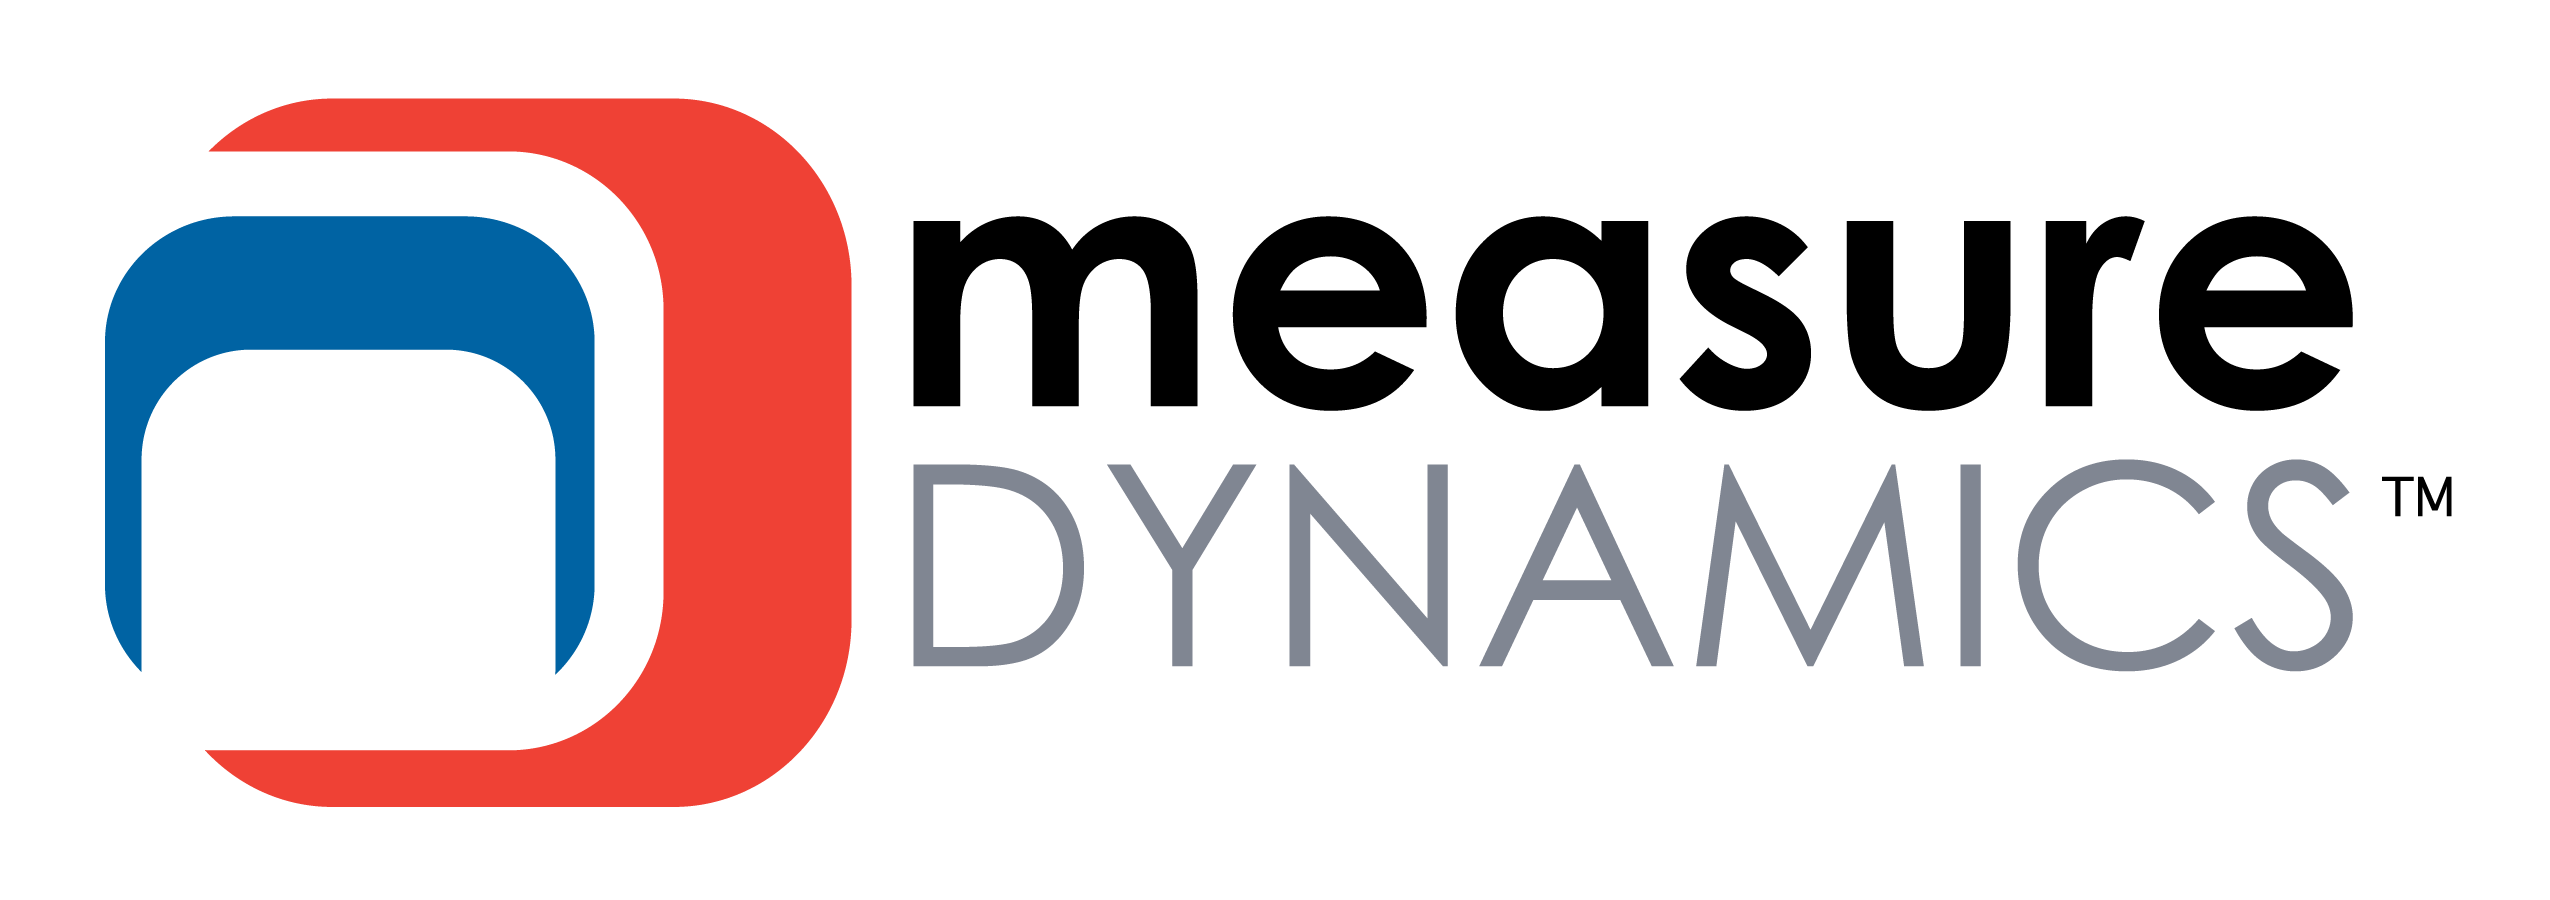 www.measuredynamics.com